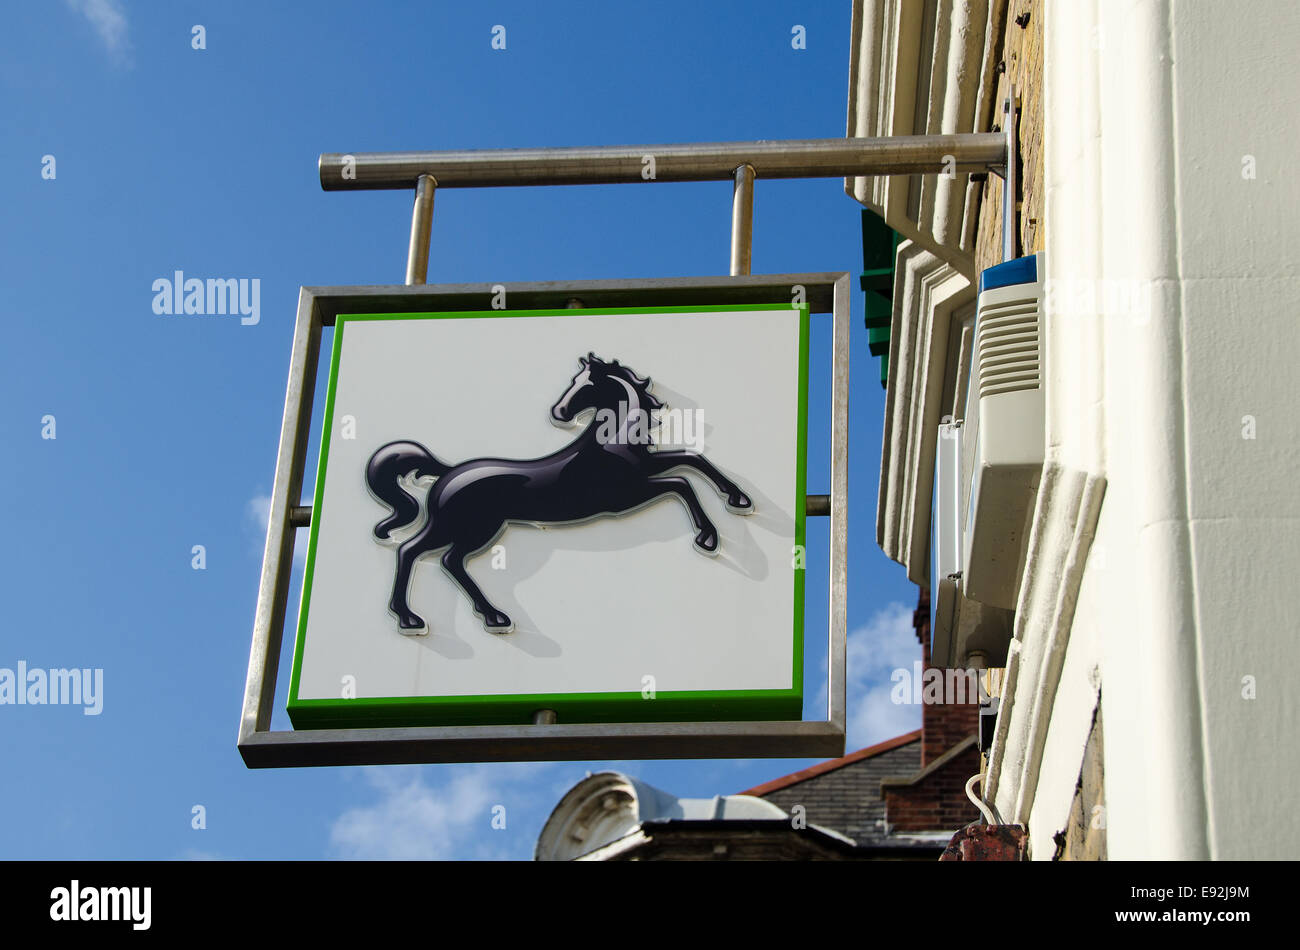 Lloyds Bank sign in the High Street at Broadstairs, Kent UK. - Stock Image